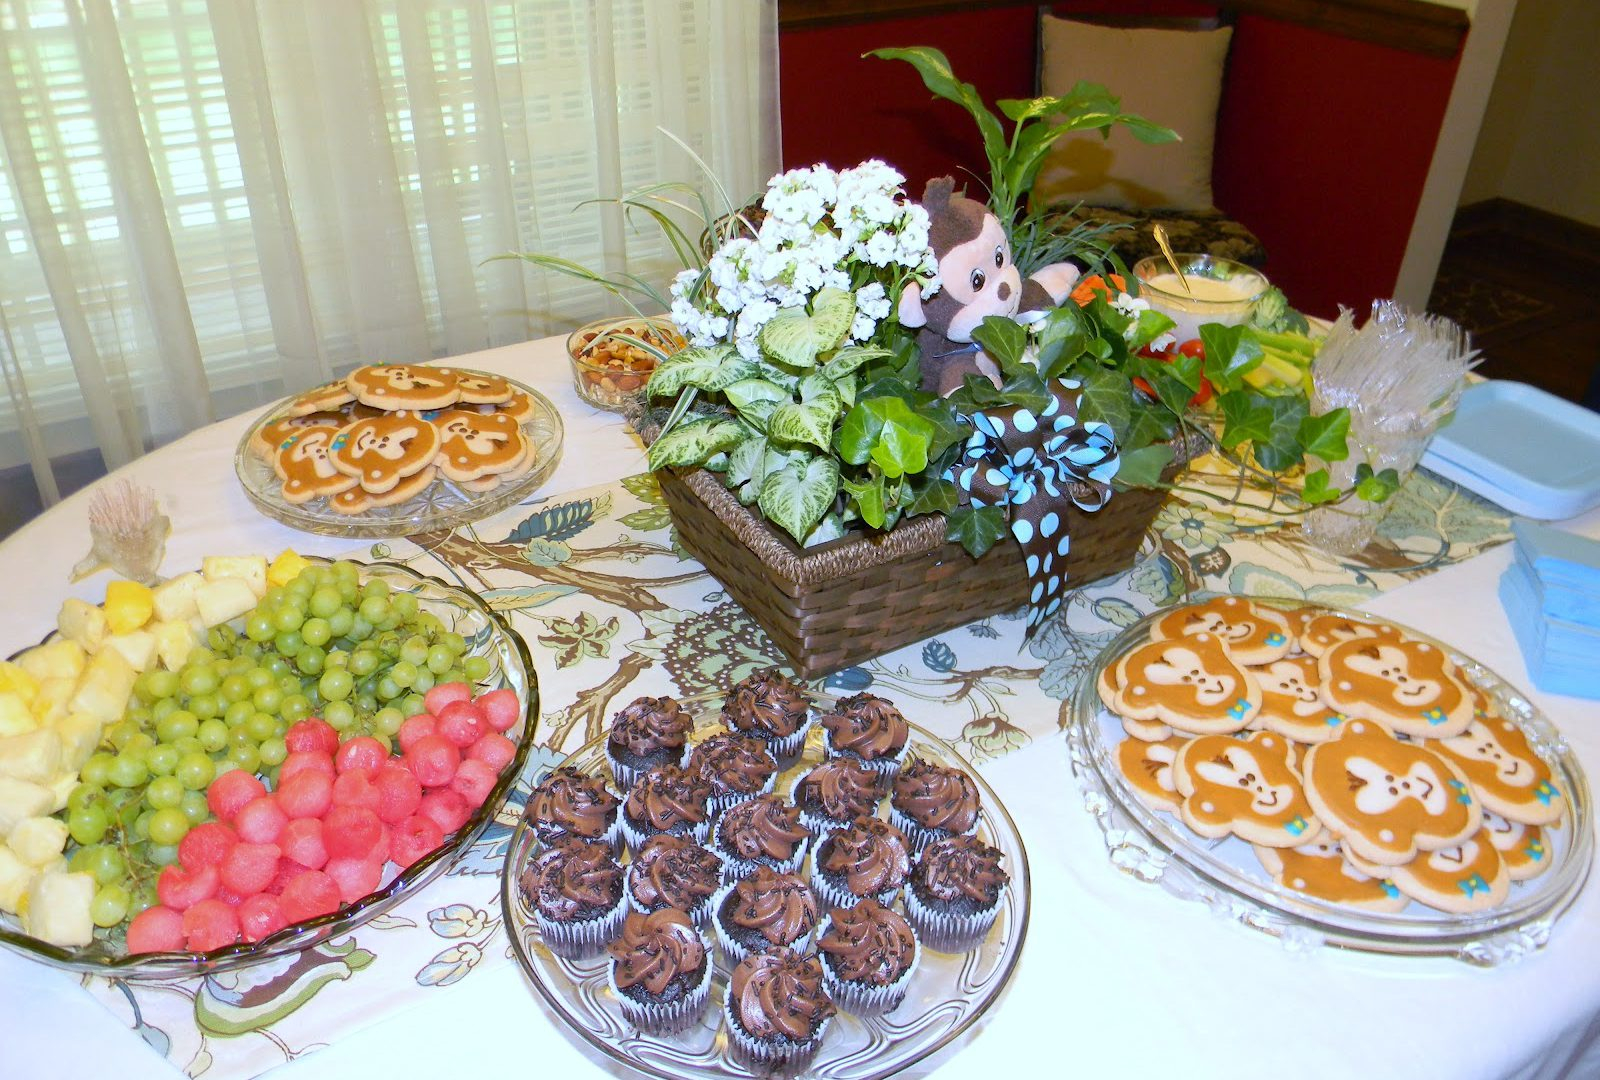 Fancy Stunning Baby Shower Finger Food Ideas On Budget Themes Foods Quick with regard to Inspirational Baby Shower Finger Food Ideas On A Budget